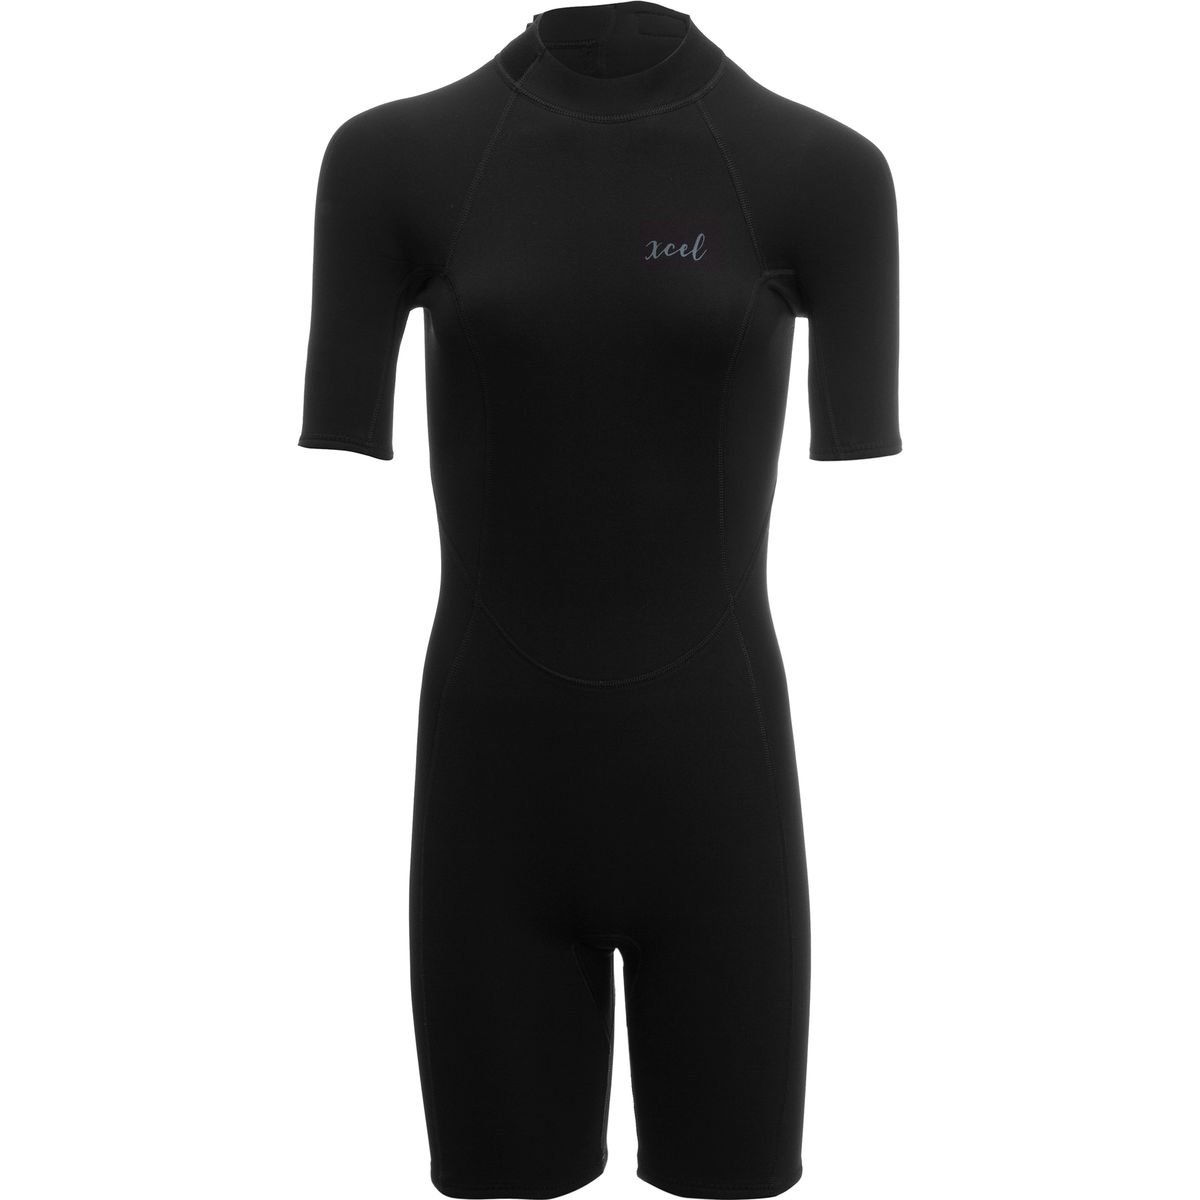 Xcelハワイ2 mm Doreen back-zip Springsuit – Women 's B06Y69R2GW 4|ブラック ブラック 4